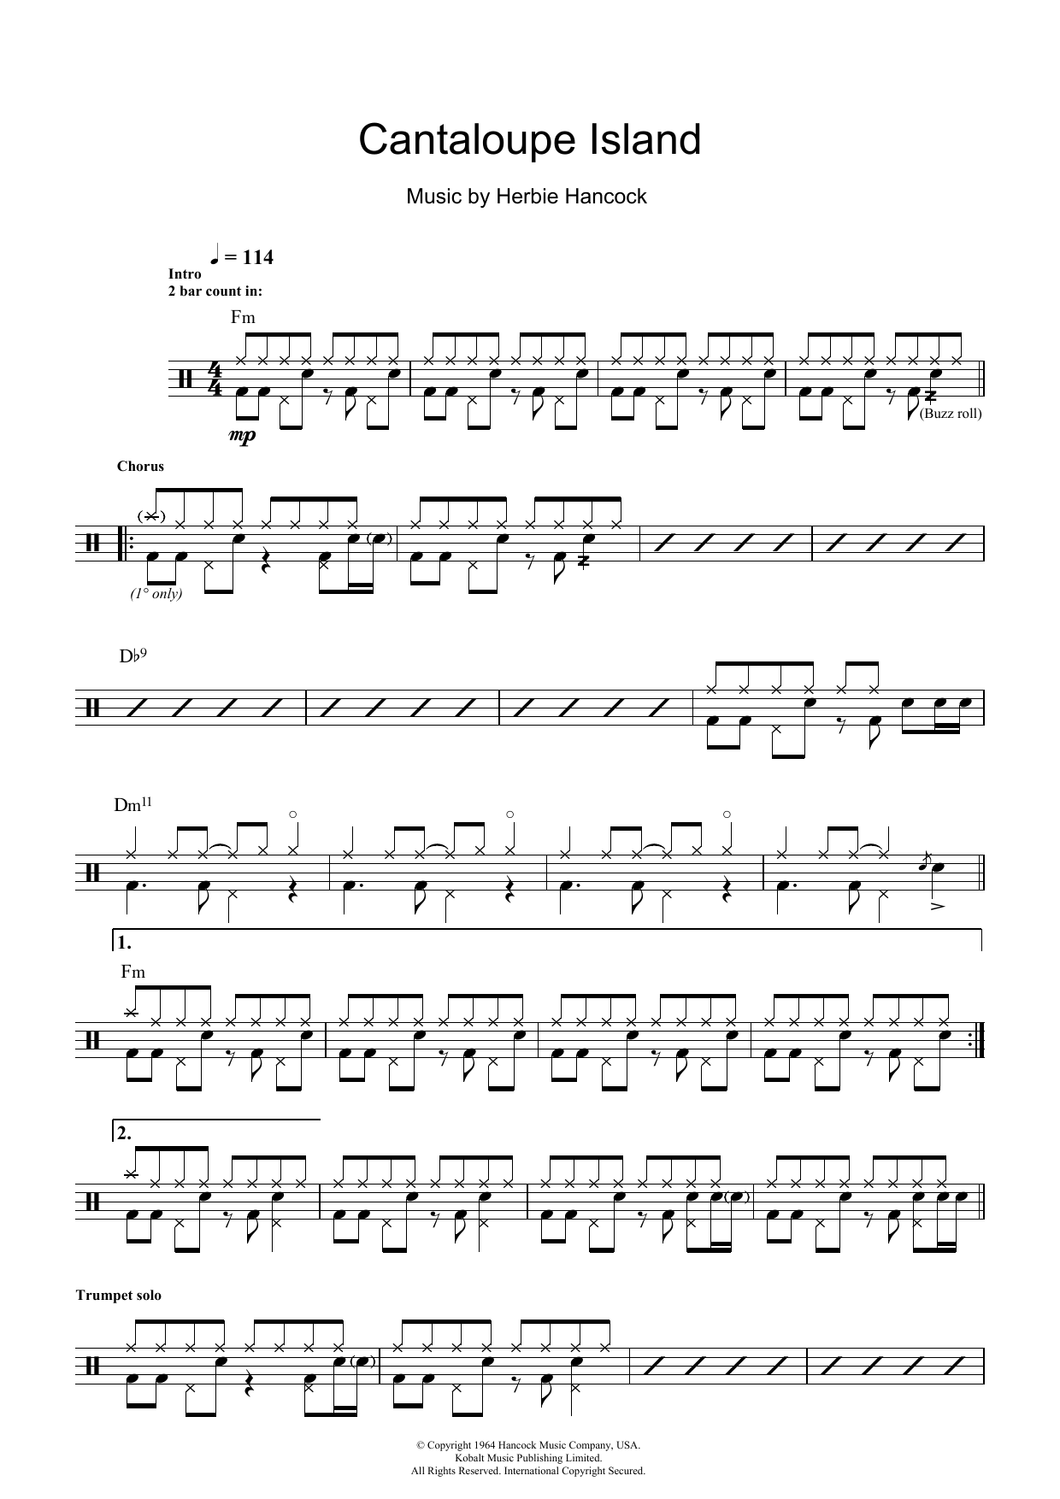 Cantaloupe Island - Herbie Hancock - Full Drum Transcription / Drum Sheet Music - SheetMusicDirect D